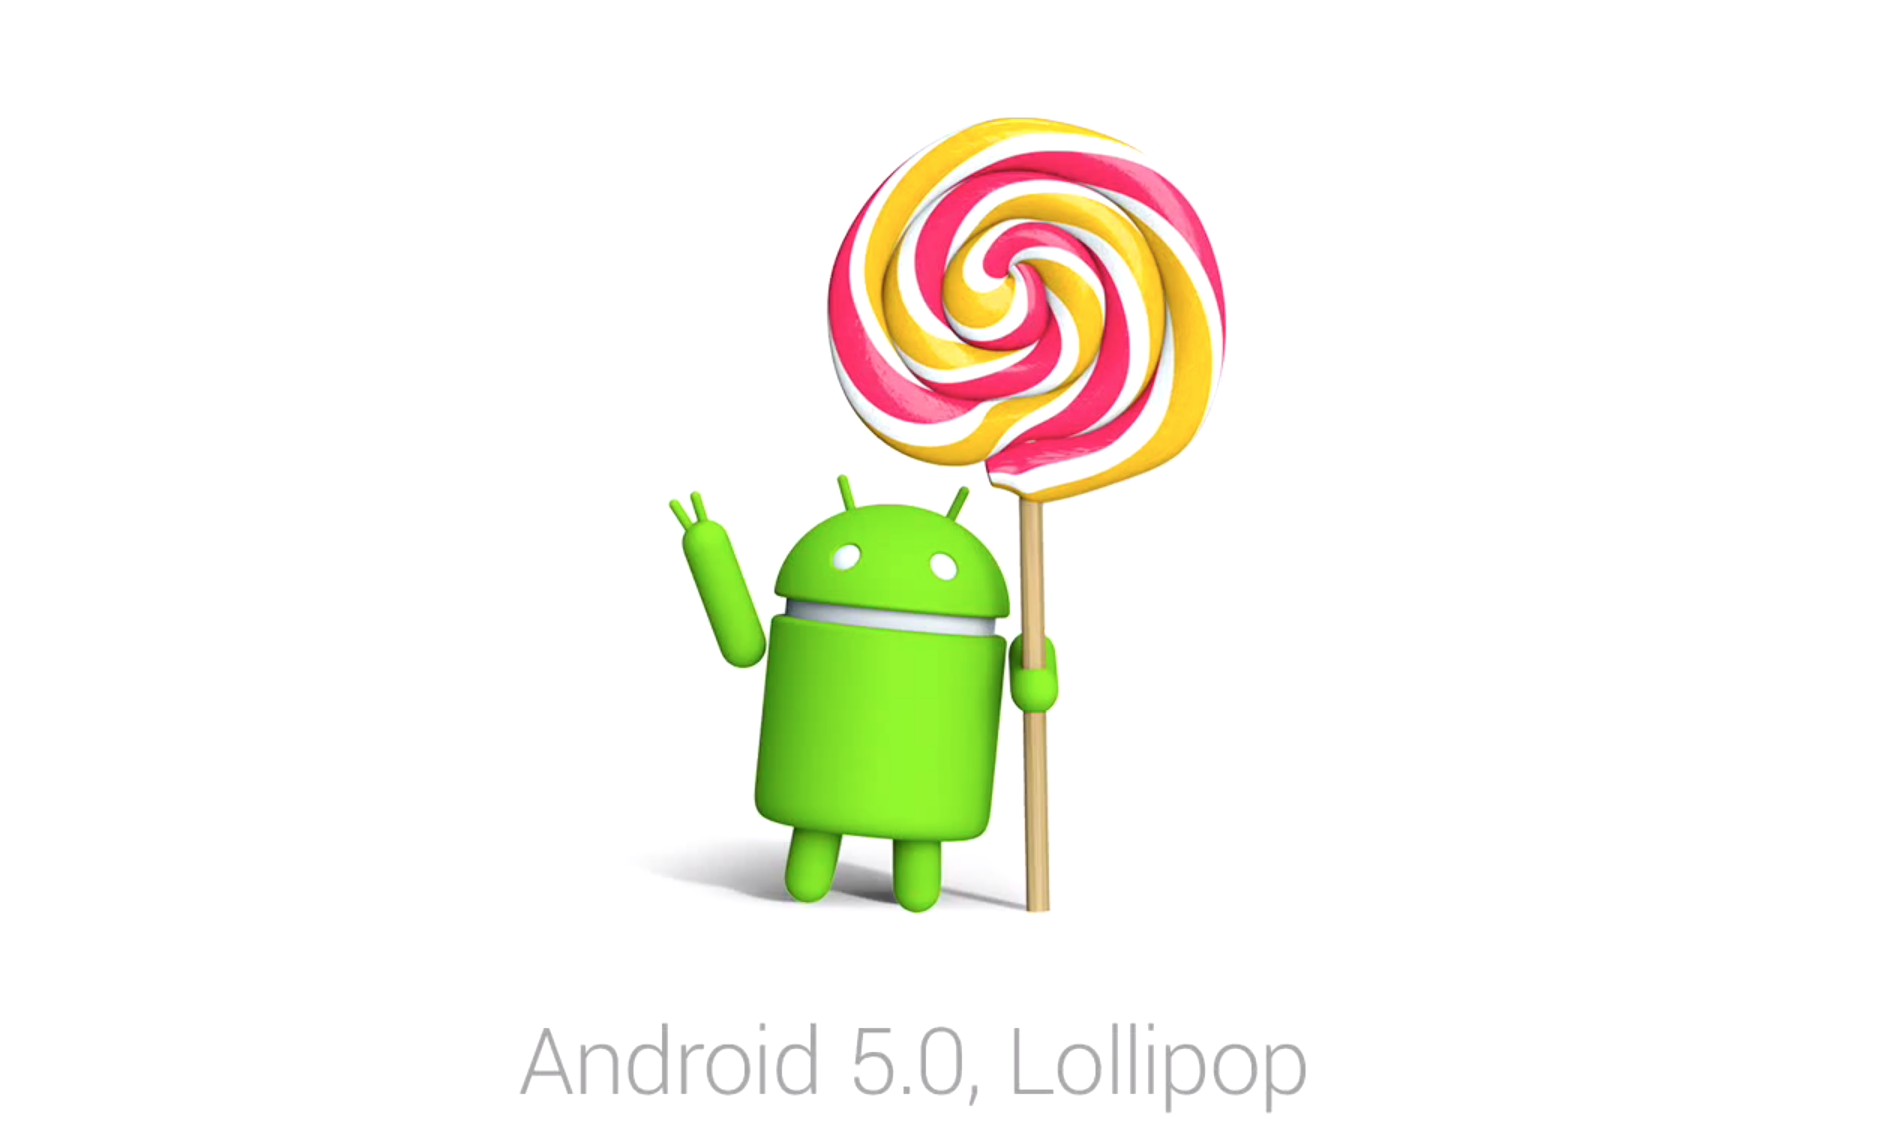 http://www.enjoyphoneblog.it/wp-content/uploads/2014/11/Android-5.0-Lollipop-Bugdroid.png